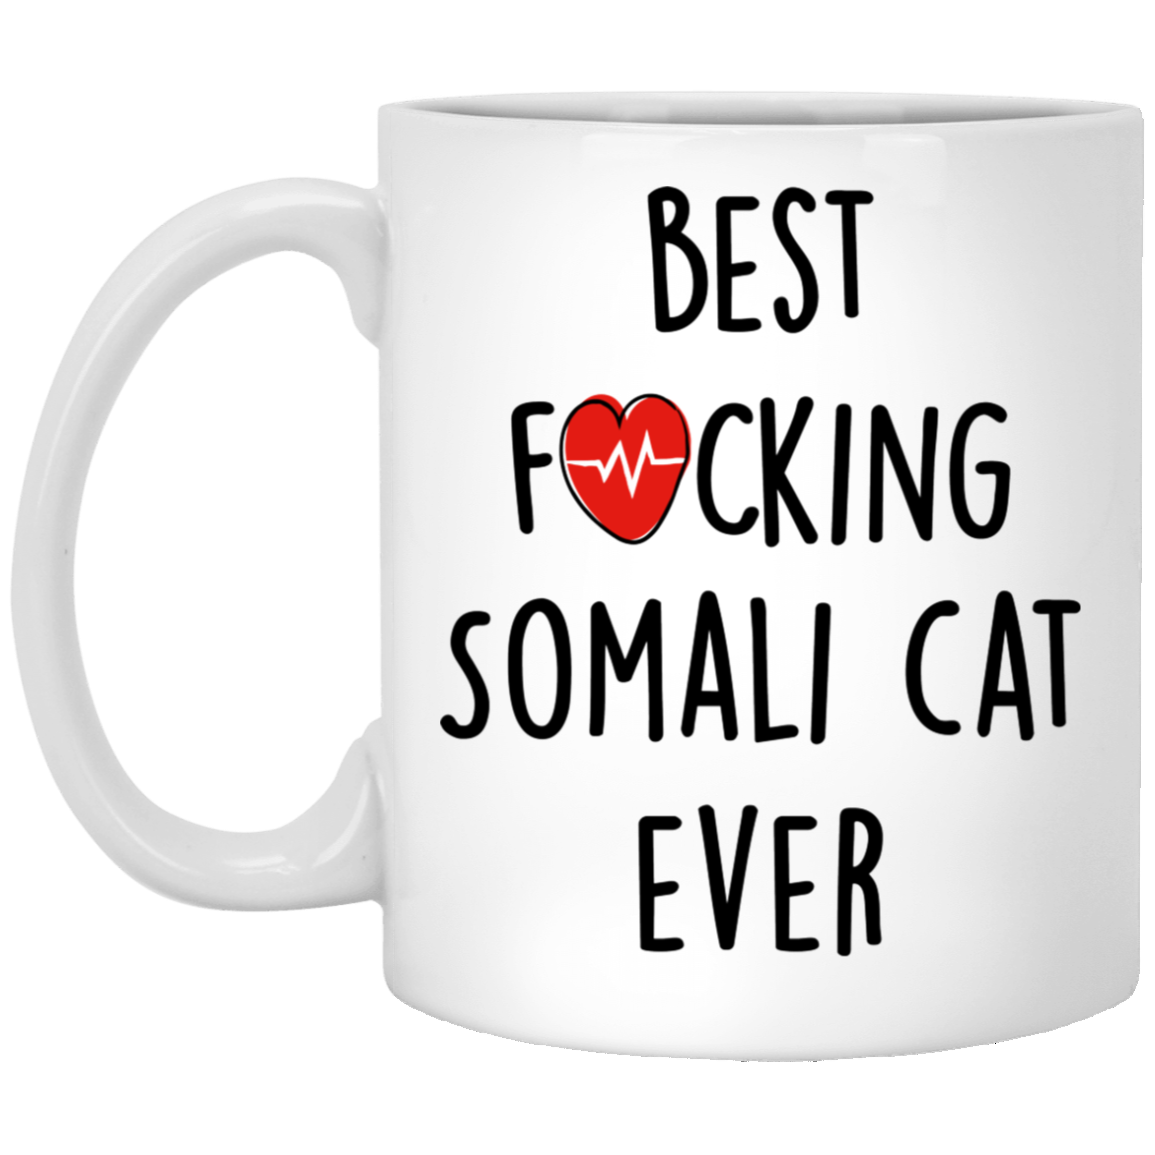 Funny-Fuking-Somali-cat-ever Funny Quotes Coffee Mug 99promocode